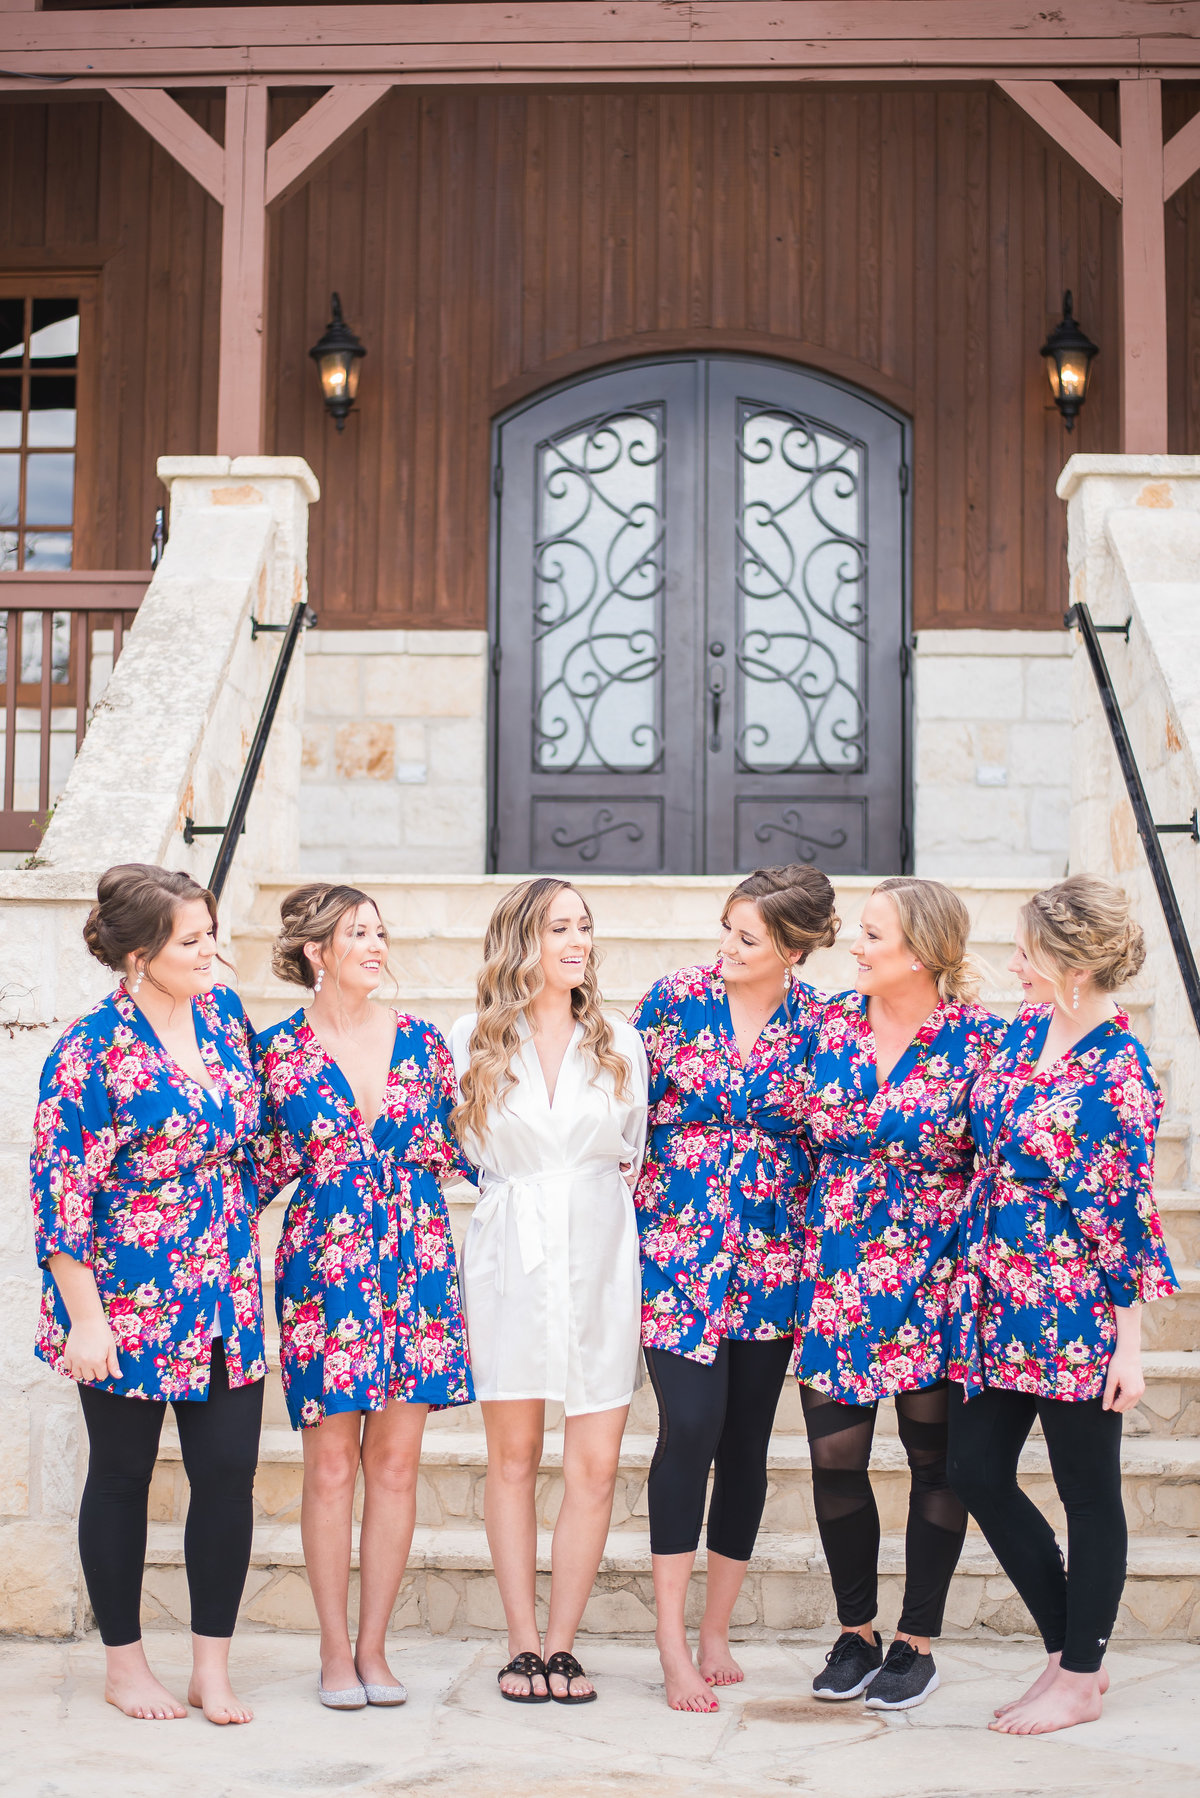 UndertheSunPhotography_PothWedding-0436